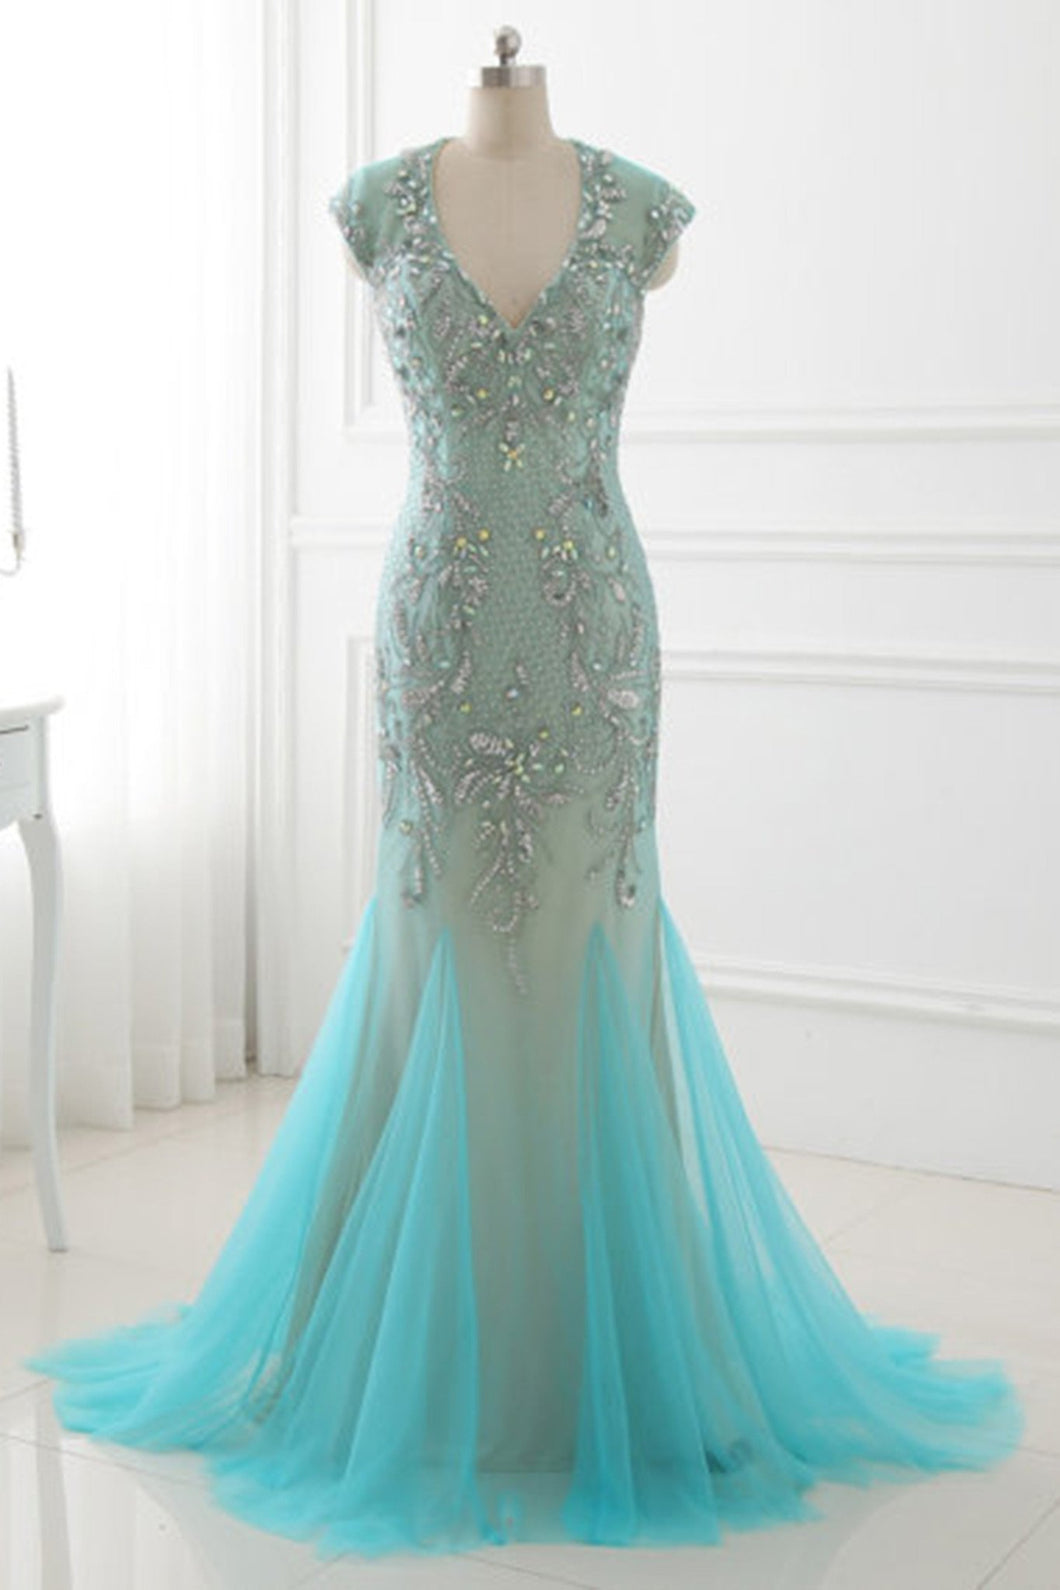 2018 evening gowns - Ice blue tulle beading rhinestone backless mermaid long dress,evening dresses